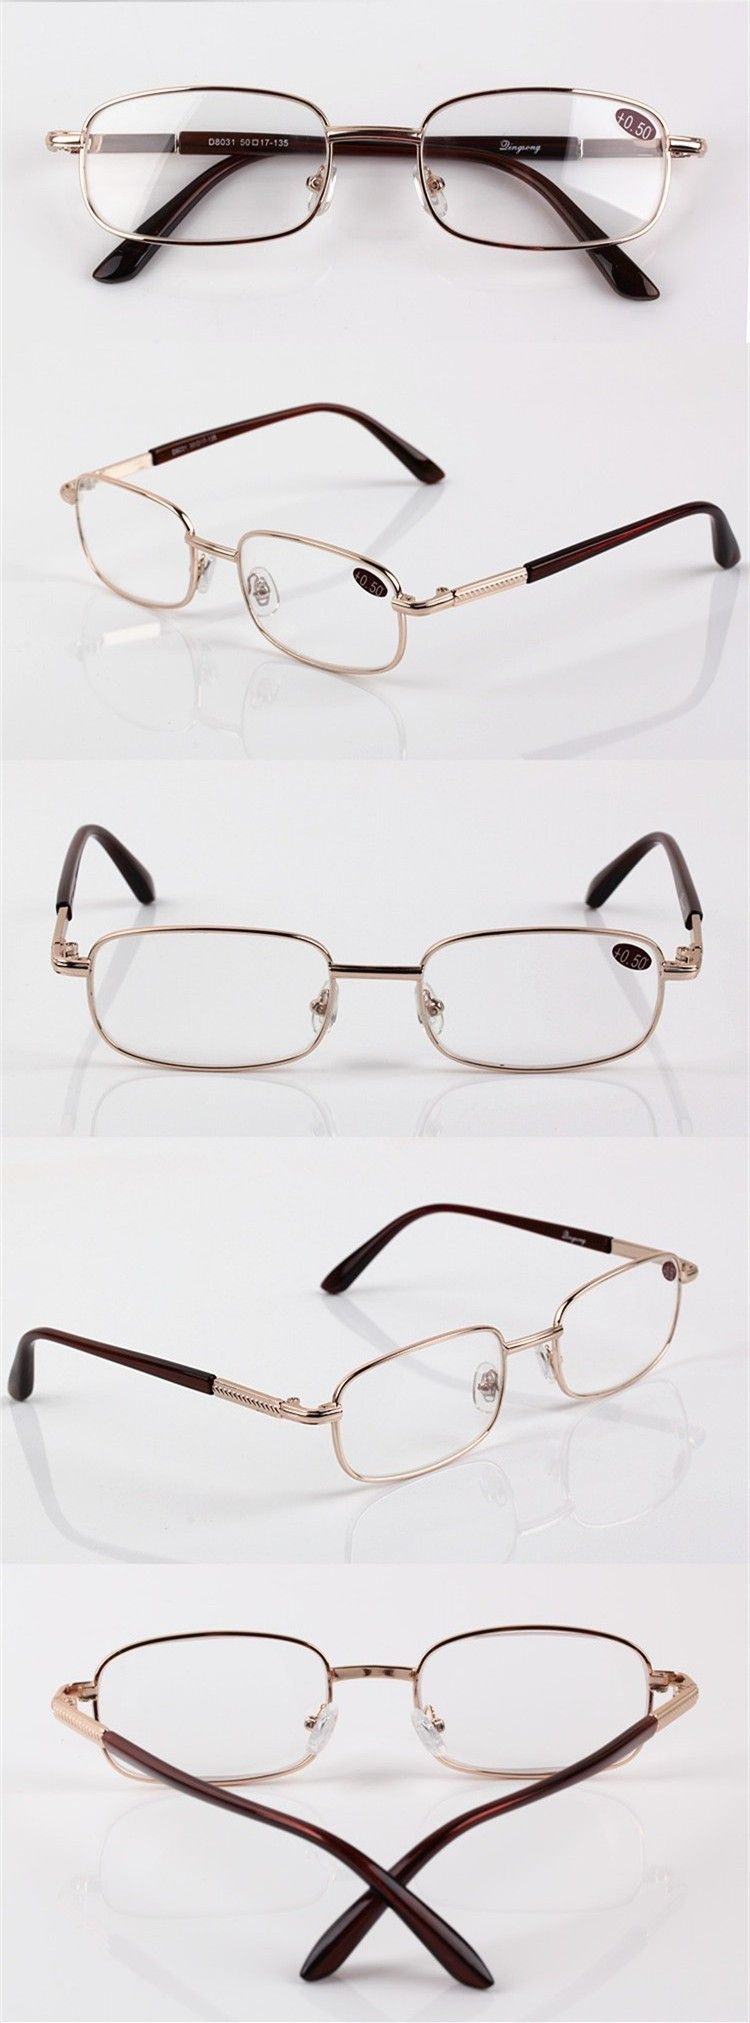 3644a20698 This is a reading glasses for the elderly